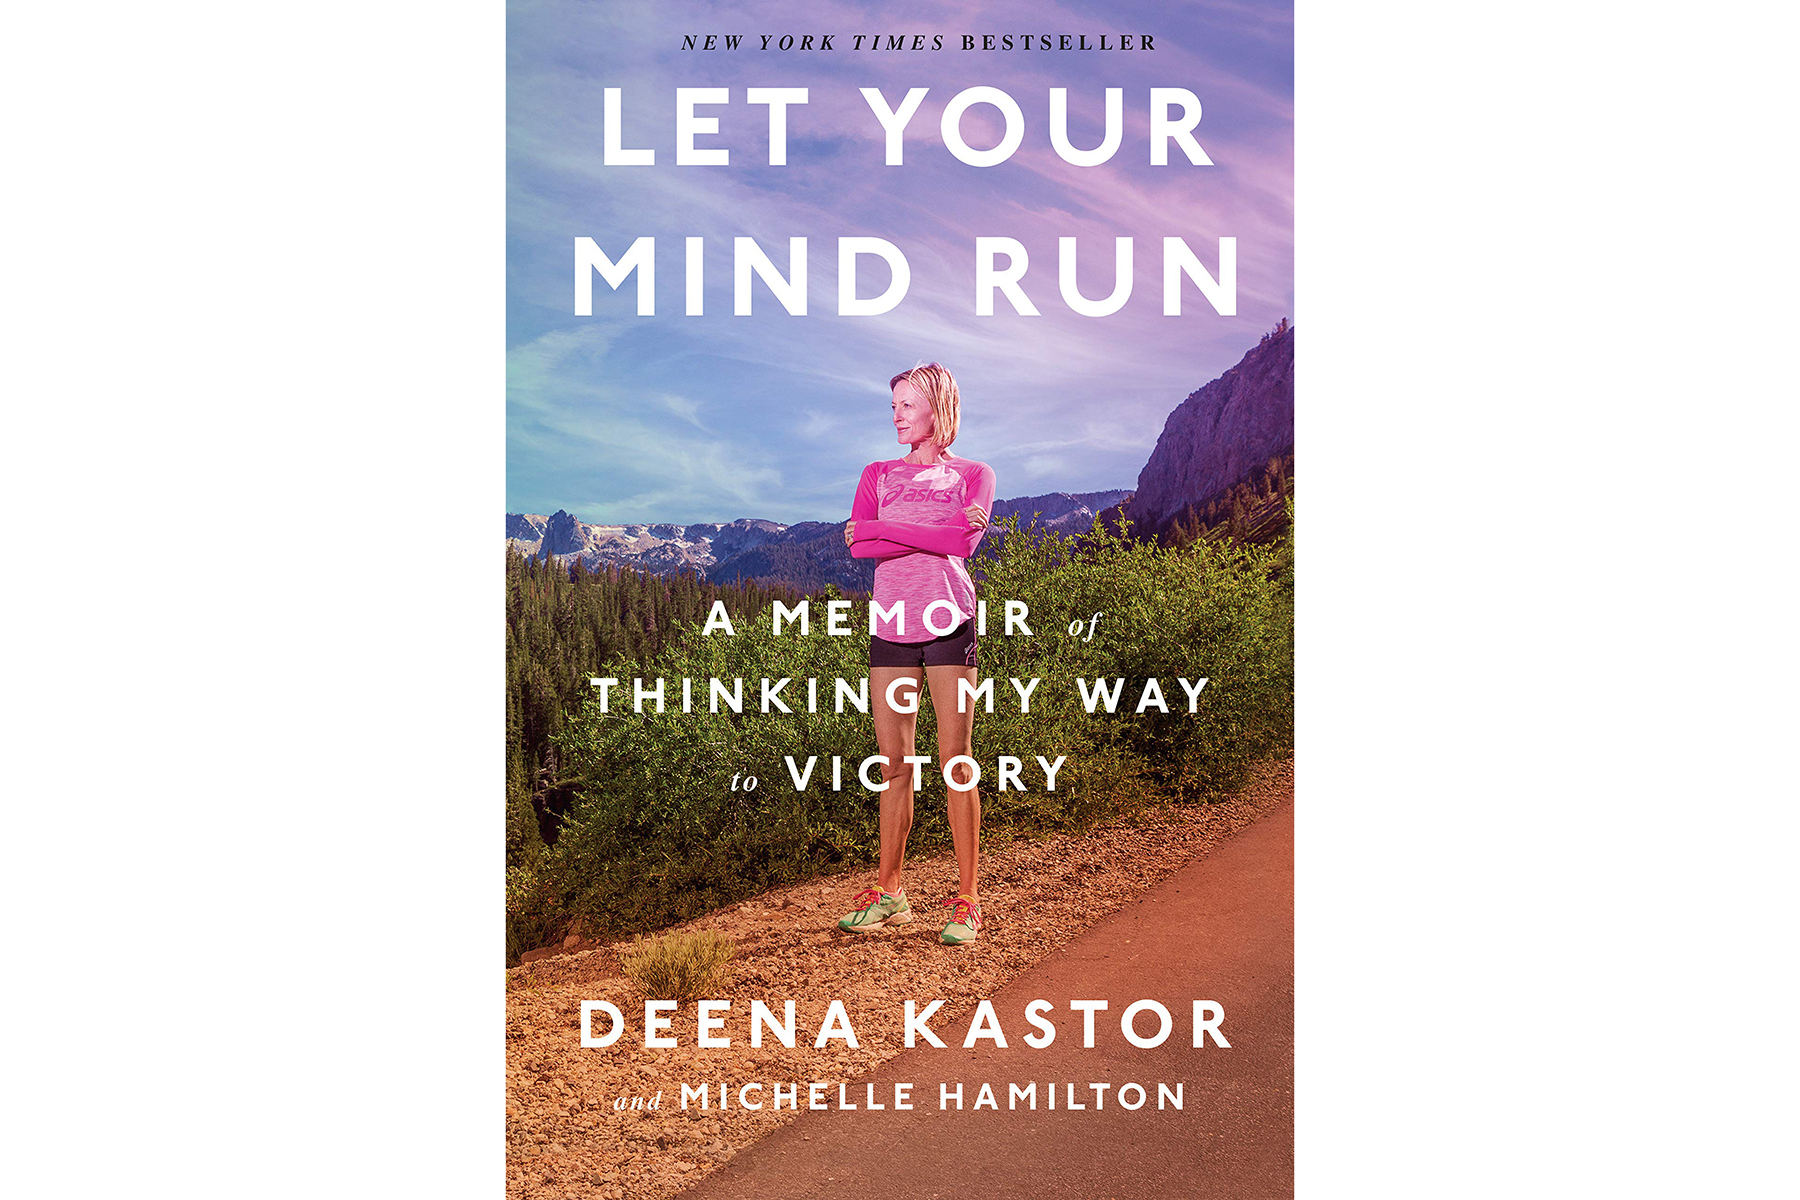 Running Books Let Your Mind Run, by Deena Kastor